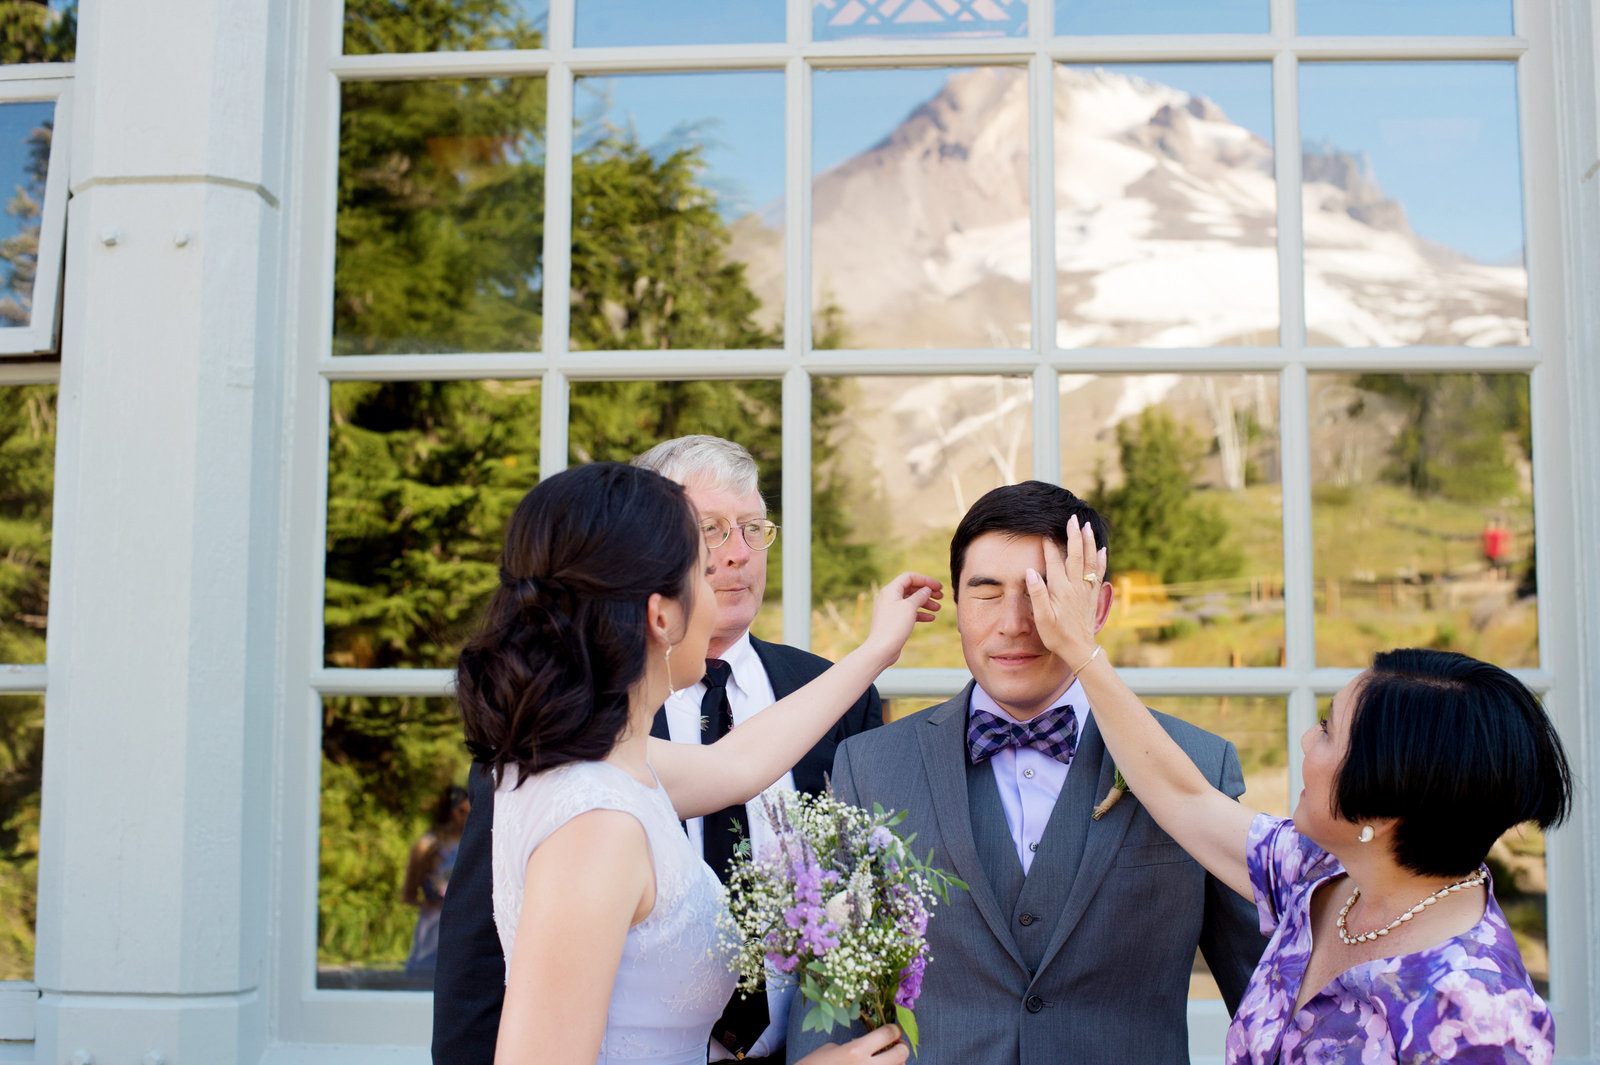 family fuss over groom's hair on his wedding day at timberline lodge